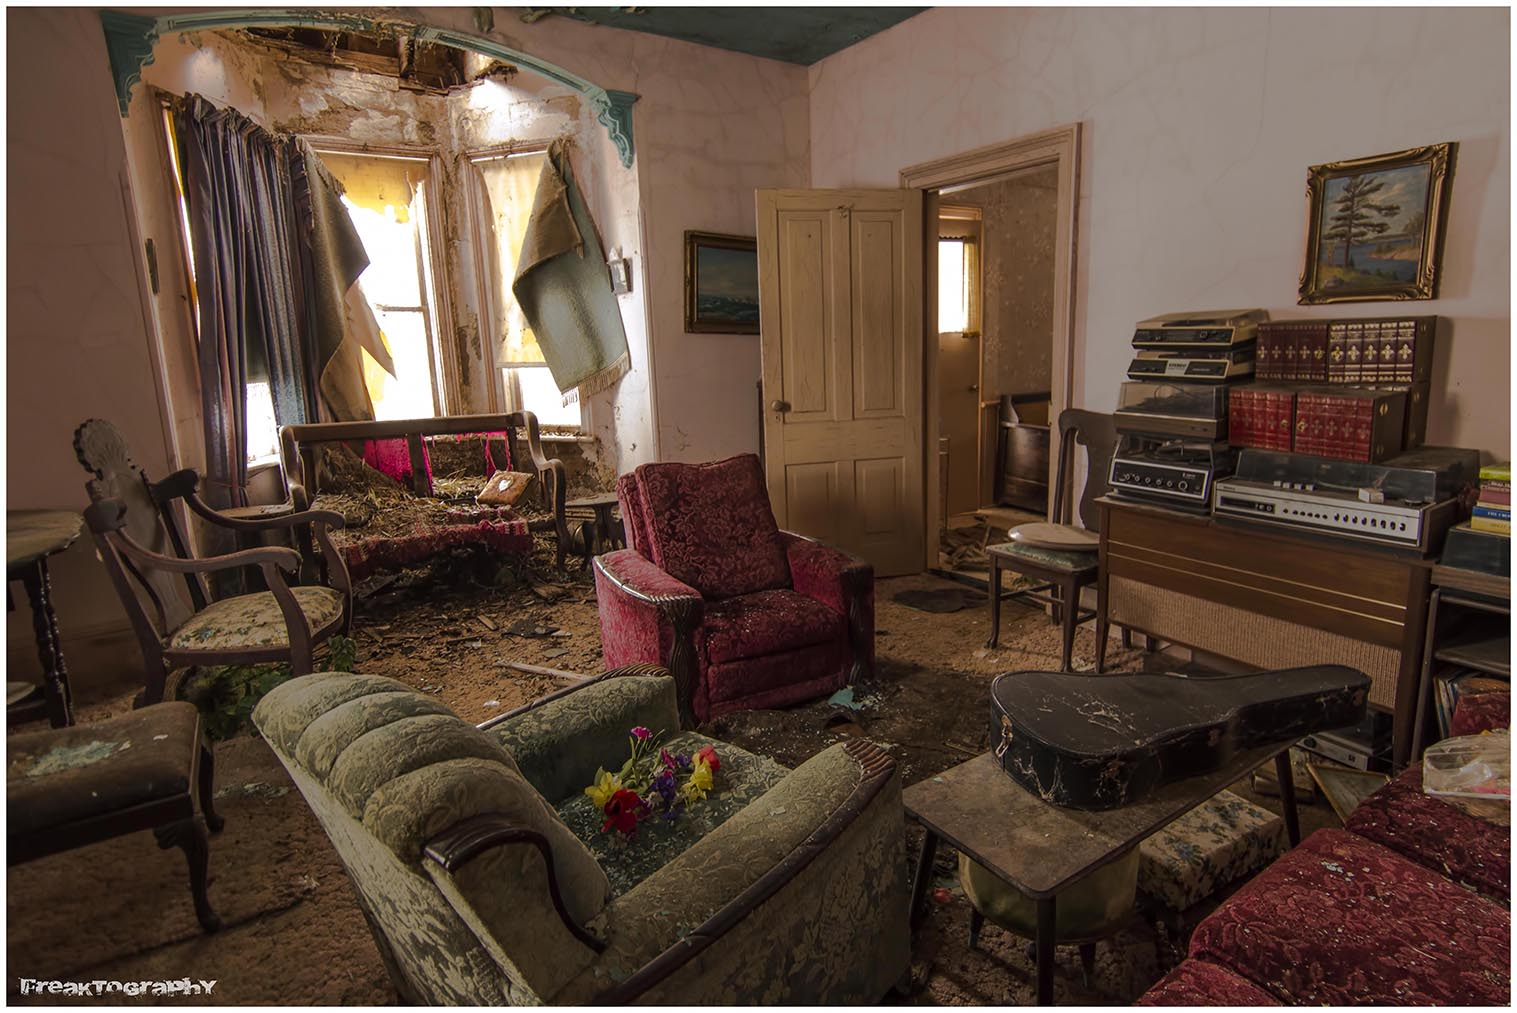 A Red Couch And Two Plush Chairs Were The Main Pieces Of Furniture, Along  With A Very Heavy Wooden Table And Chair Set In A Corner. As With The Other  Room, ...